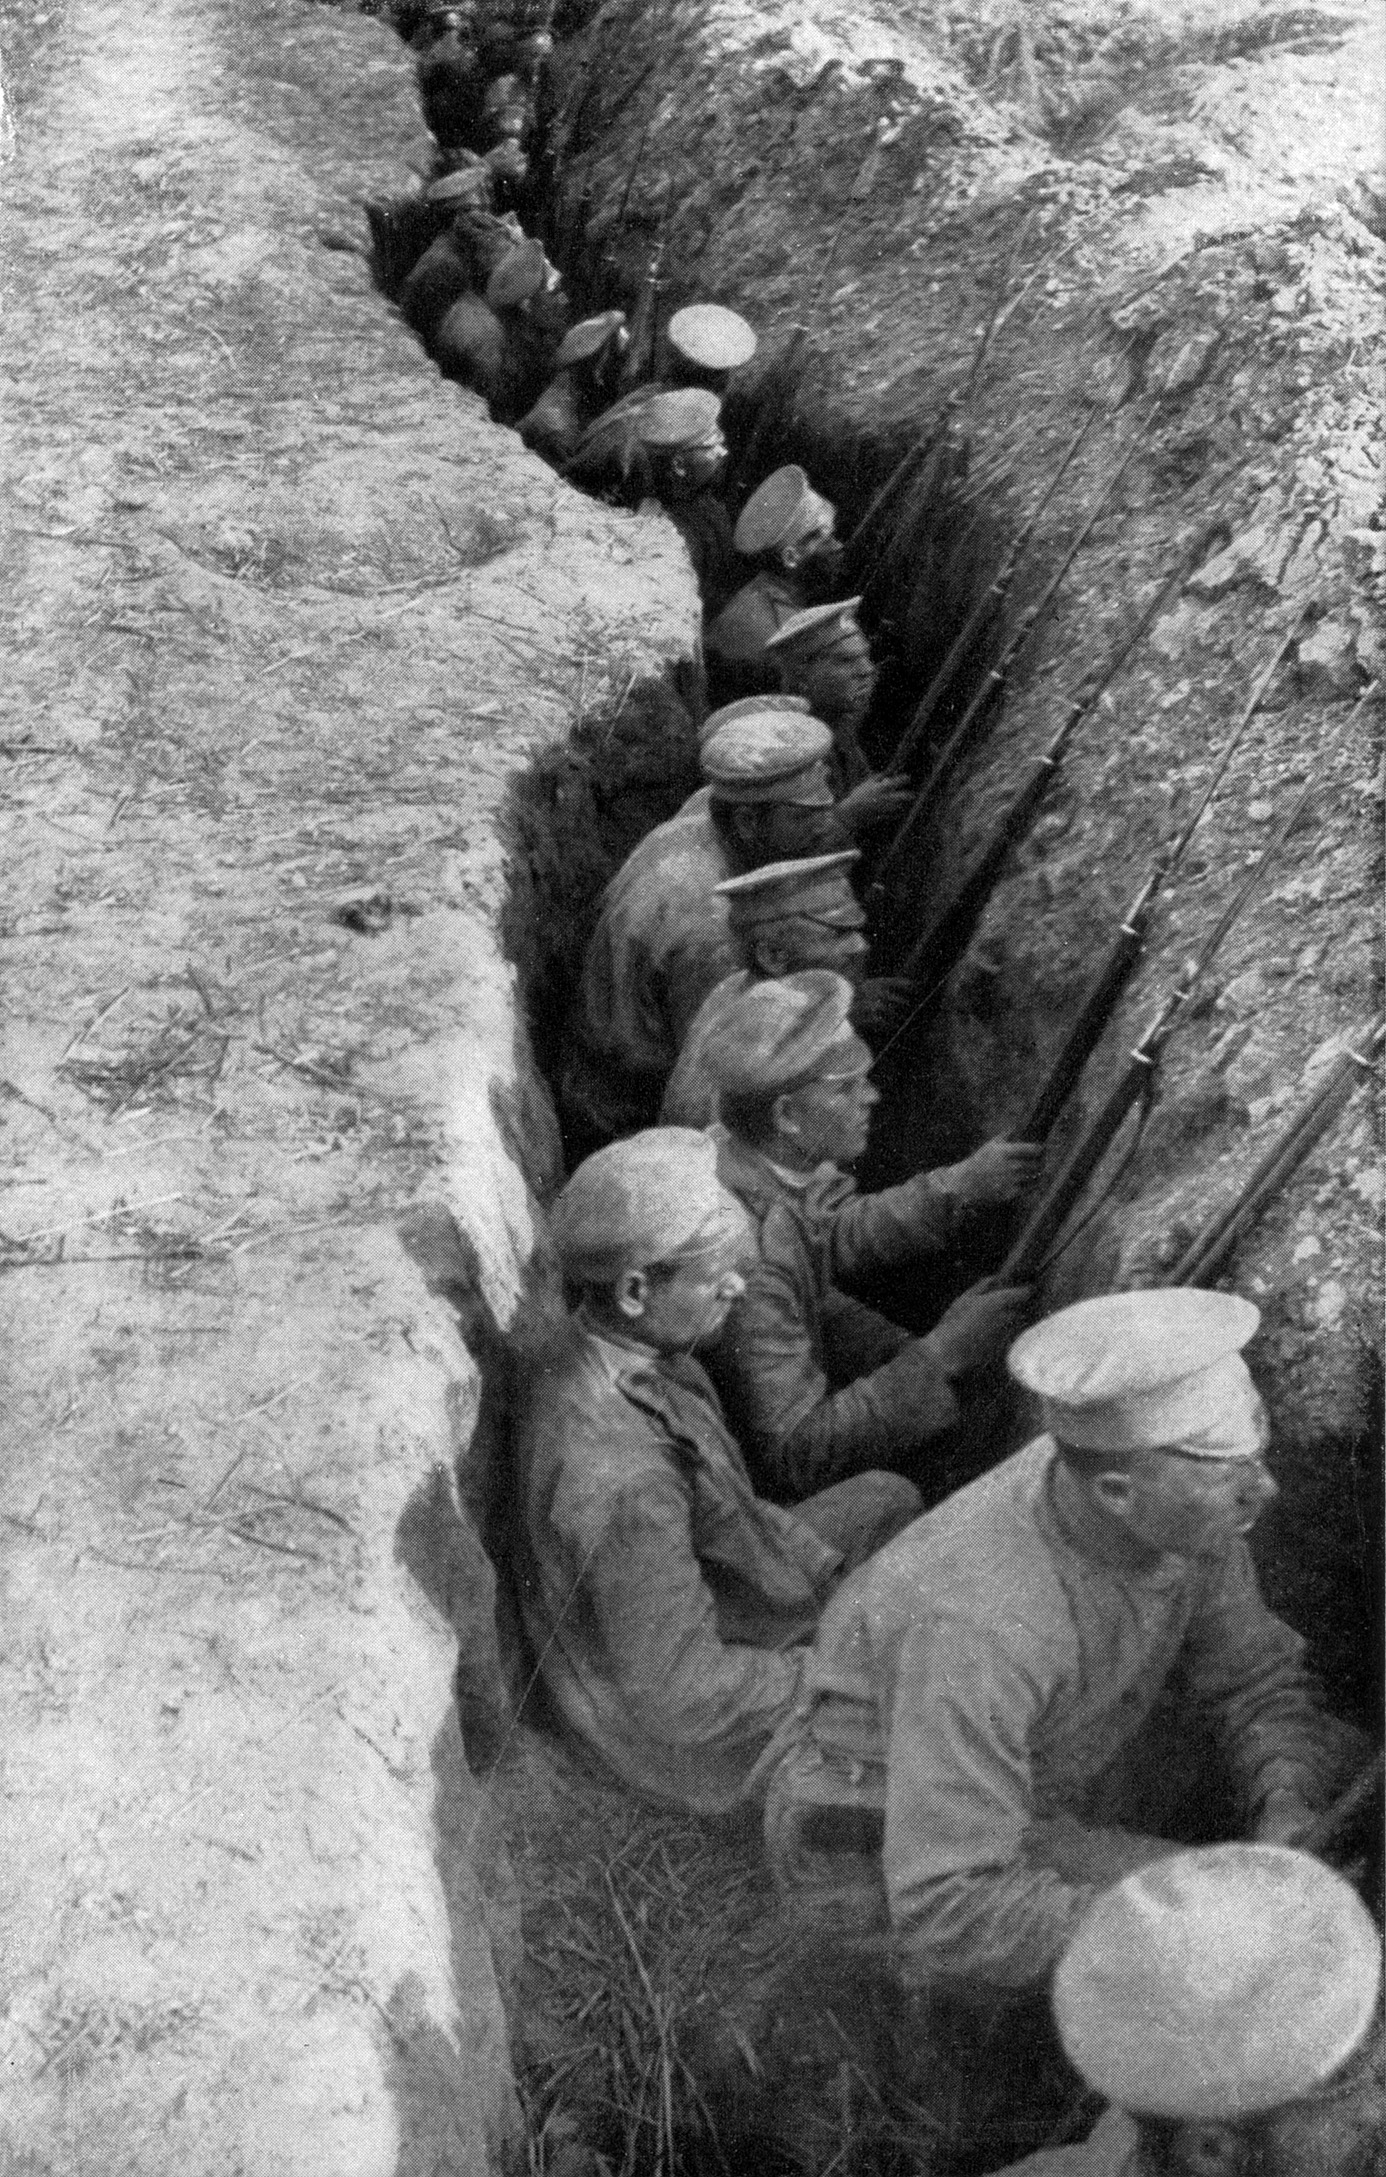 a Russian soldiers in trench (National Geographic Magazine, George H. Mewes)